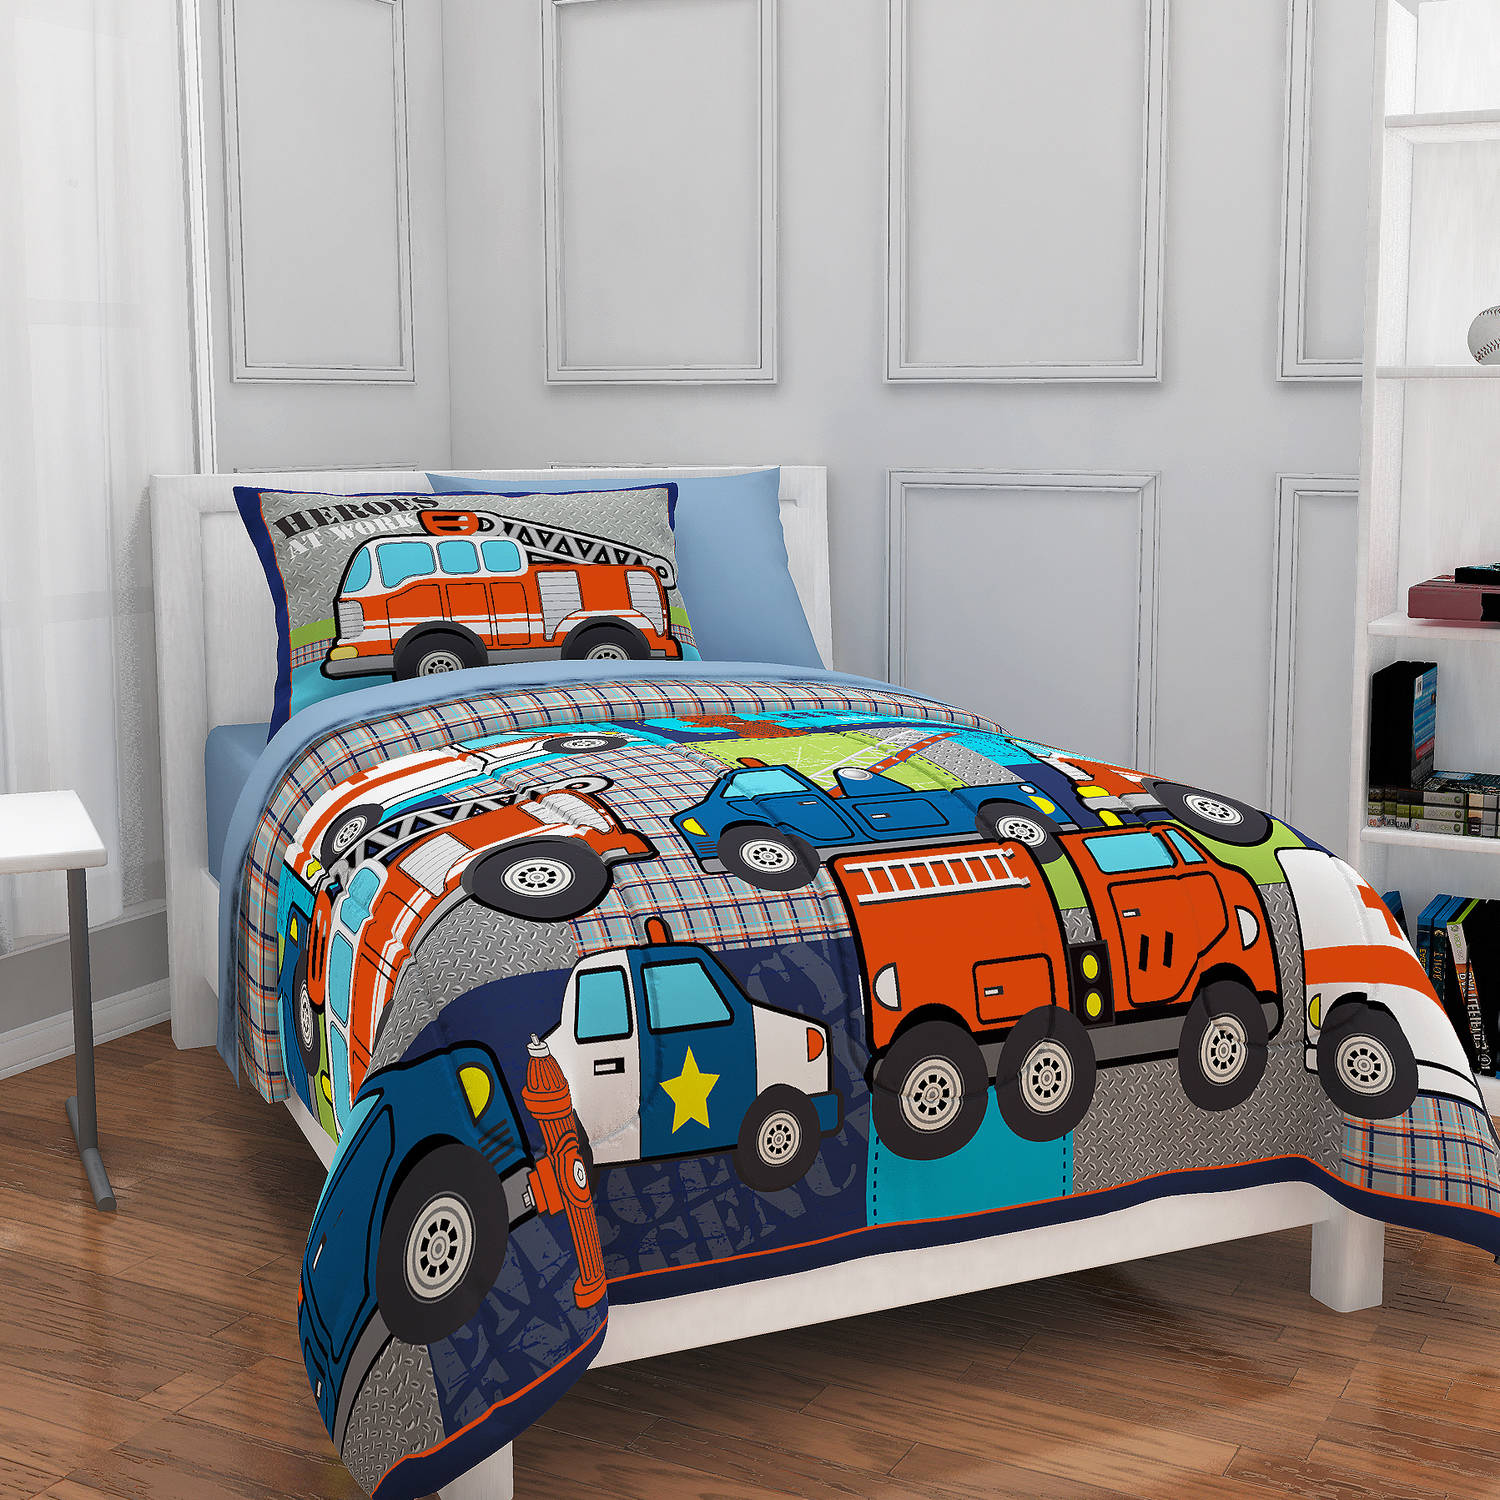 quilts bedspread mason kids cheap small terrific coordinating boy kid sheets bedding girl room toddler comforter little s bed canada pottery boys walmart on teen sets for a barn comforters bag minecraft modern unique bedroom linens frozen avengers marvel in twin soccer orange